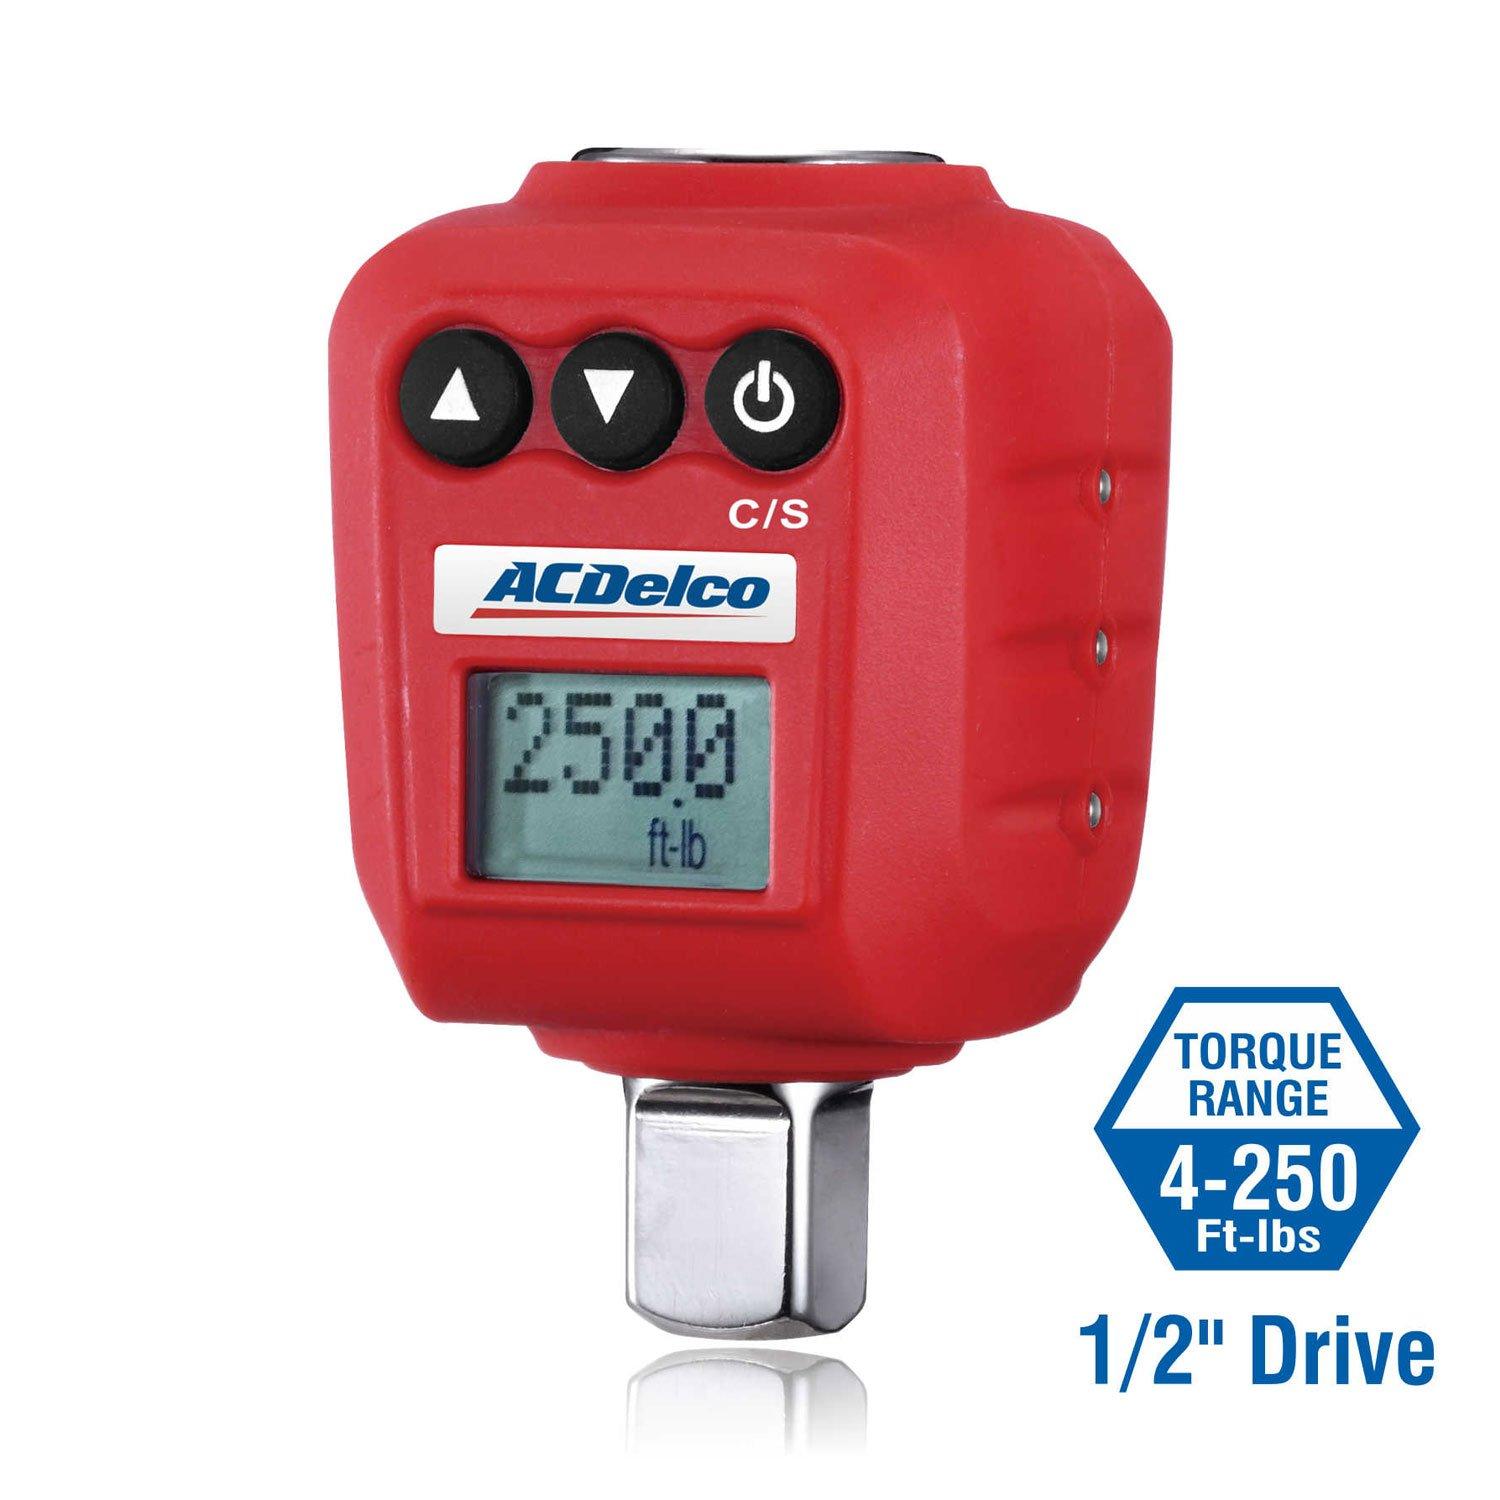 ACDelco 1/2'' Digital Torque Adapter (4-250 ft-lbs) with Audible/LED Alert ARM602-4A by ACDelco Tools (Image #3)